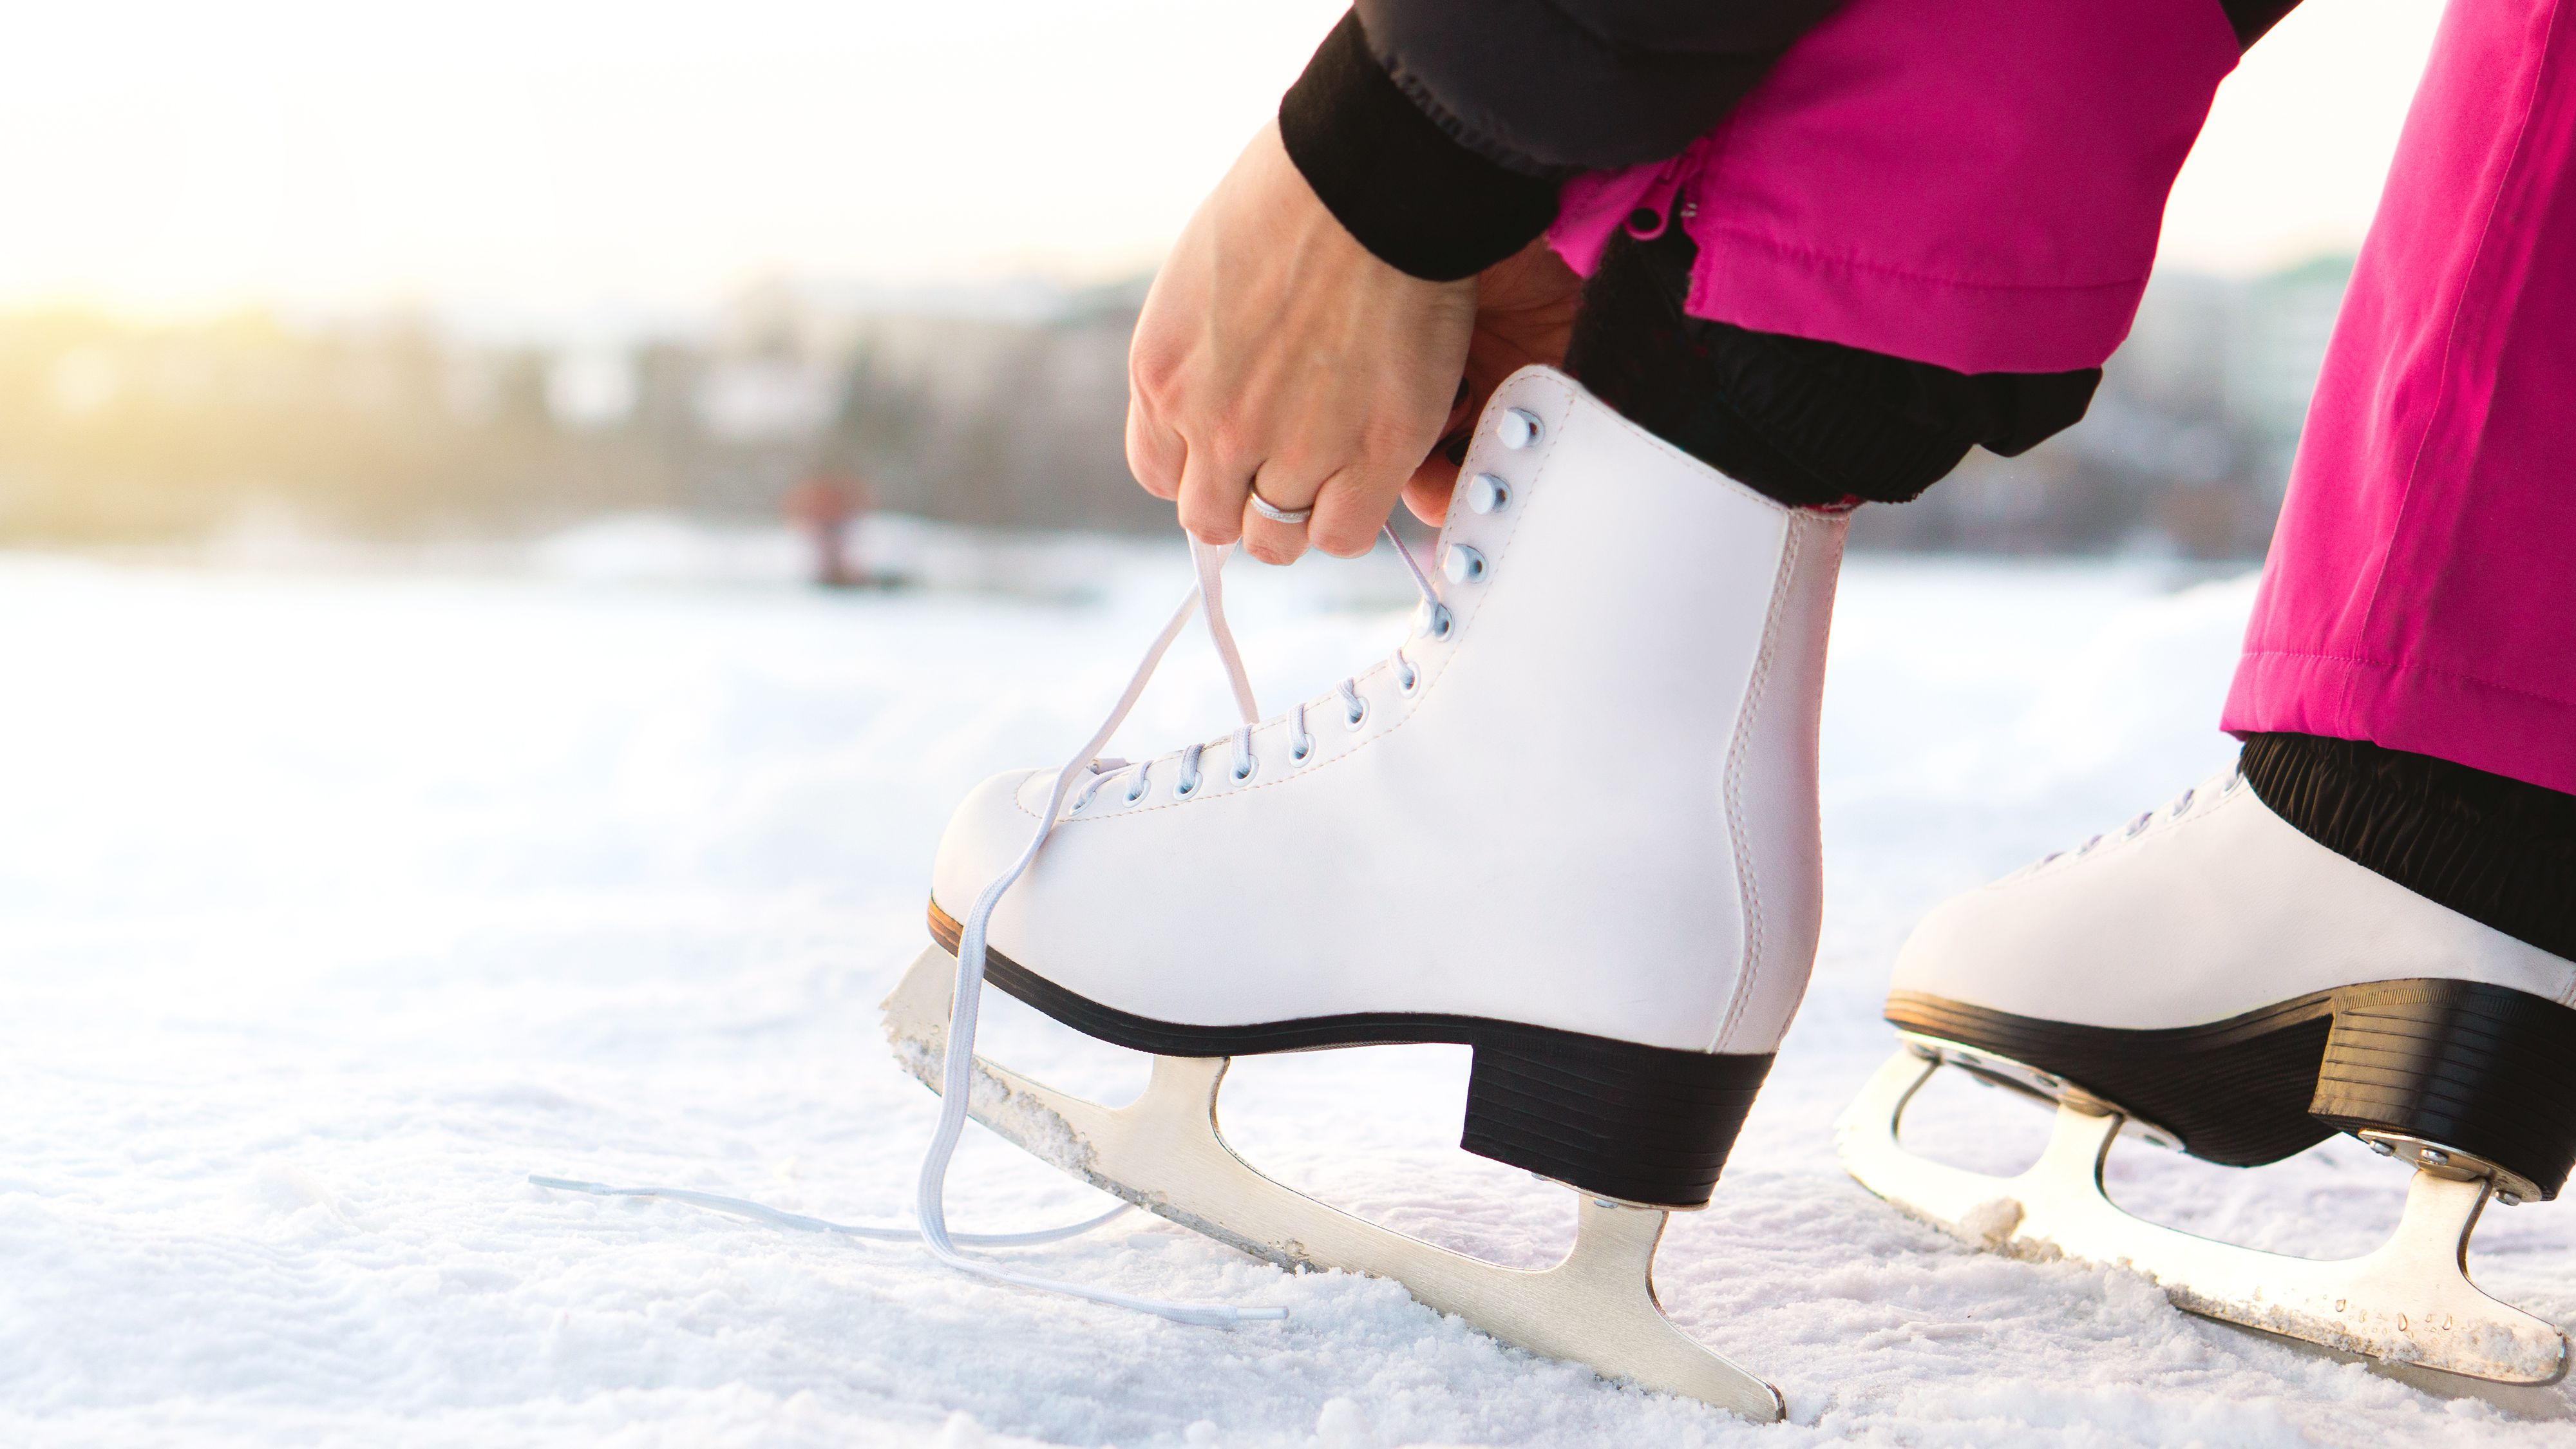 Global Figure Skating Equipment Market 2020 Trending Technologies,  Developments, Key Players and End-use Industry to 2026 – Galus Australis